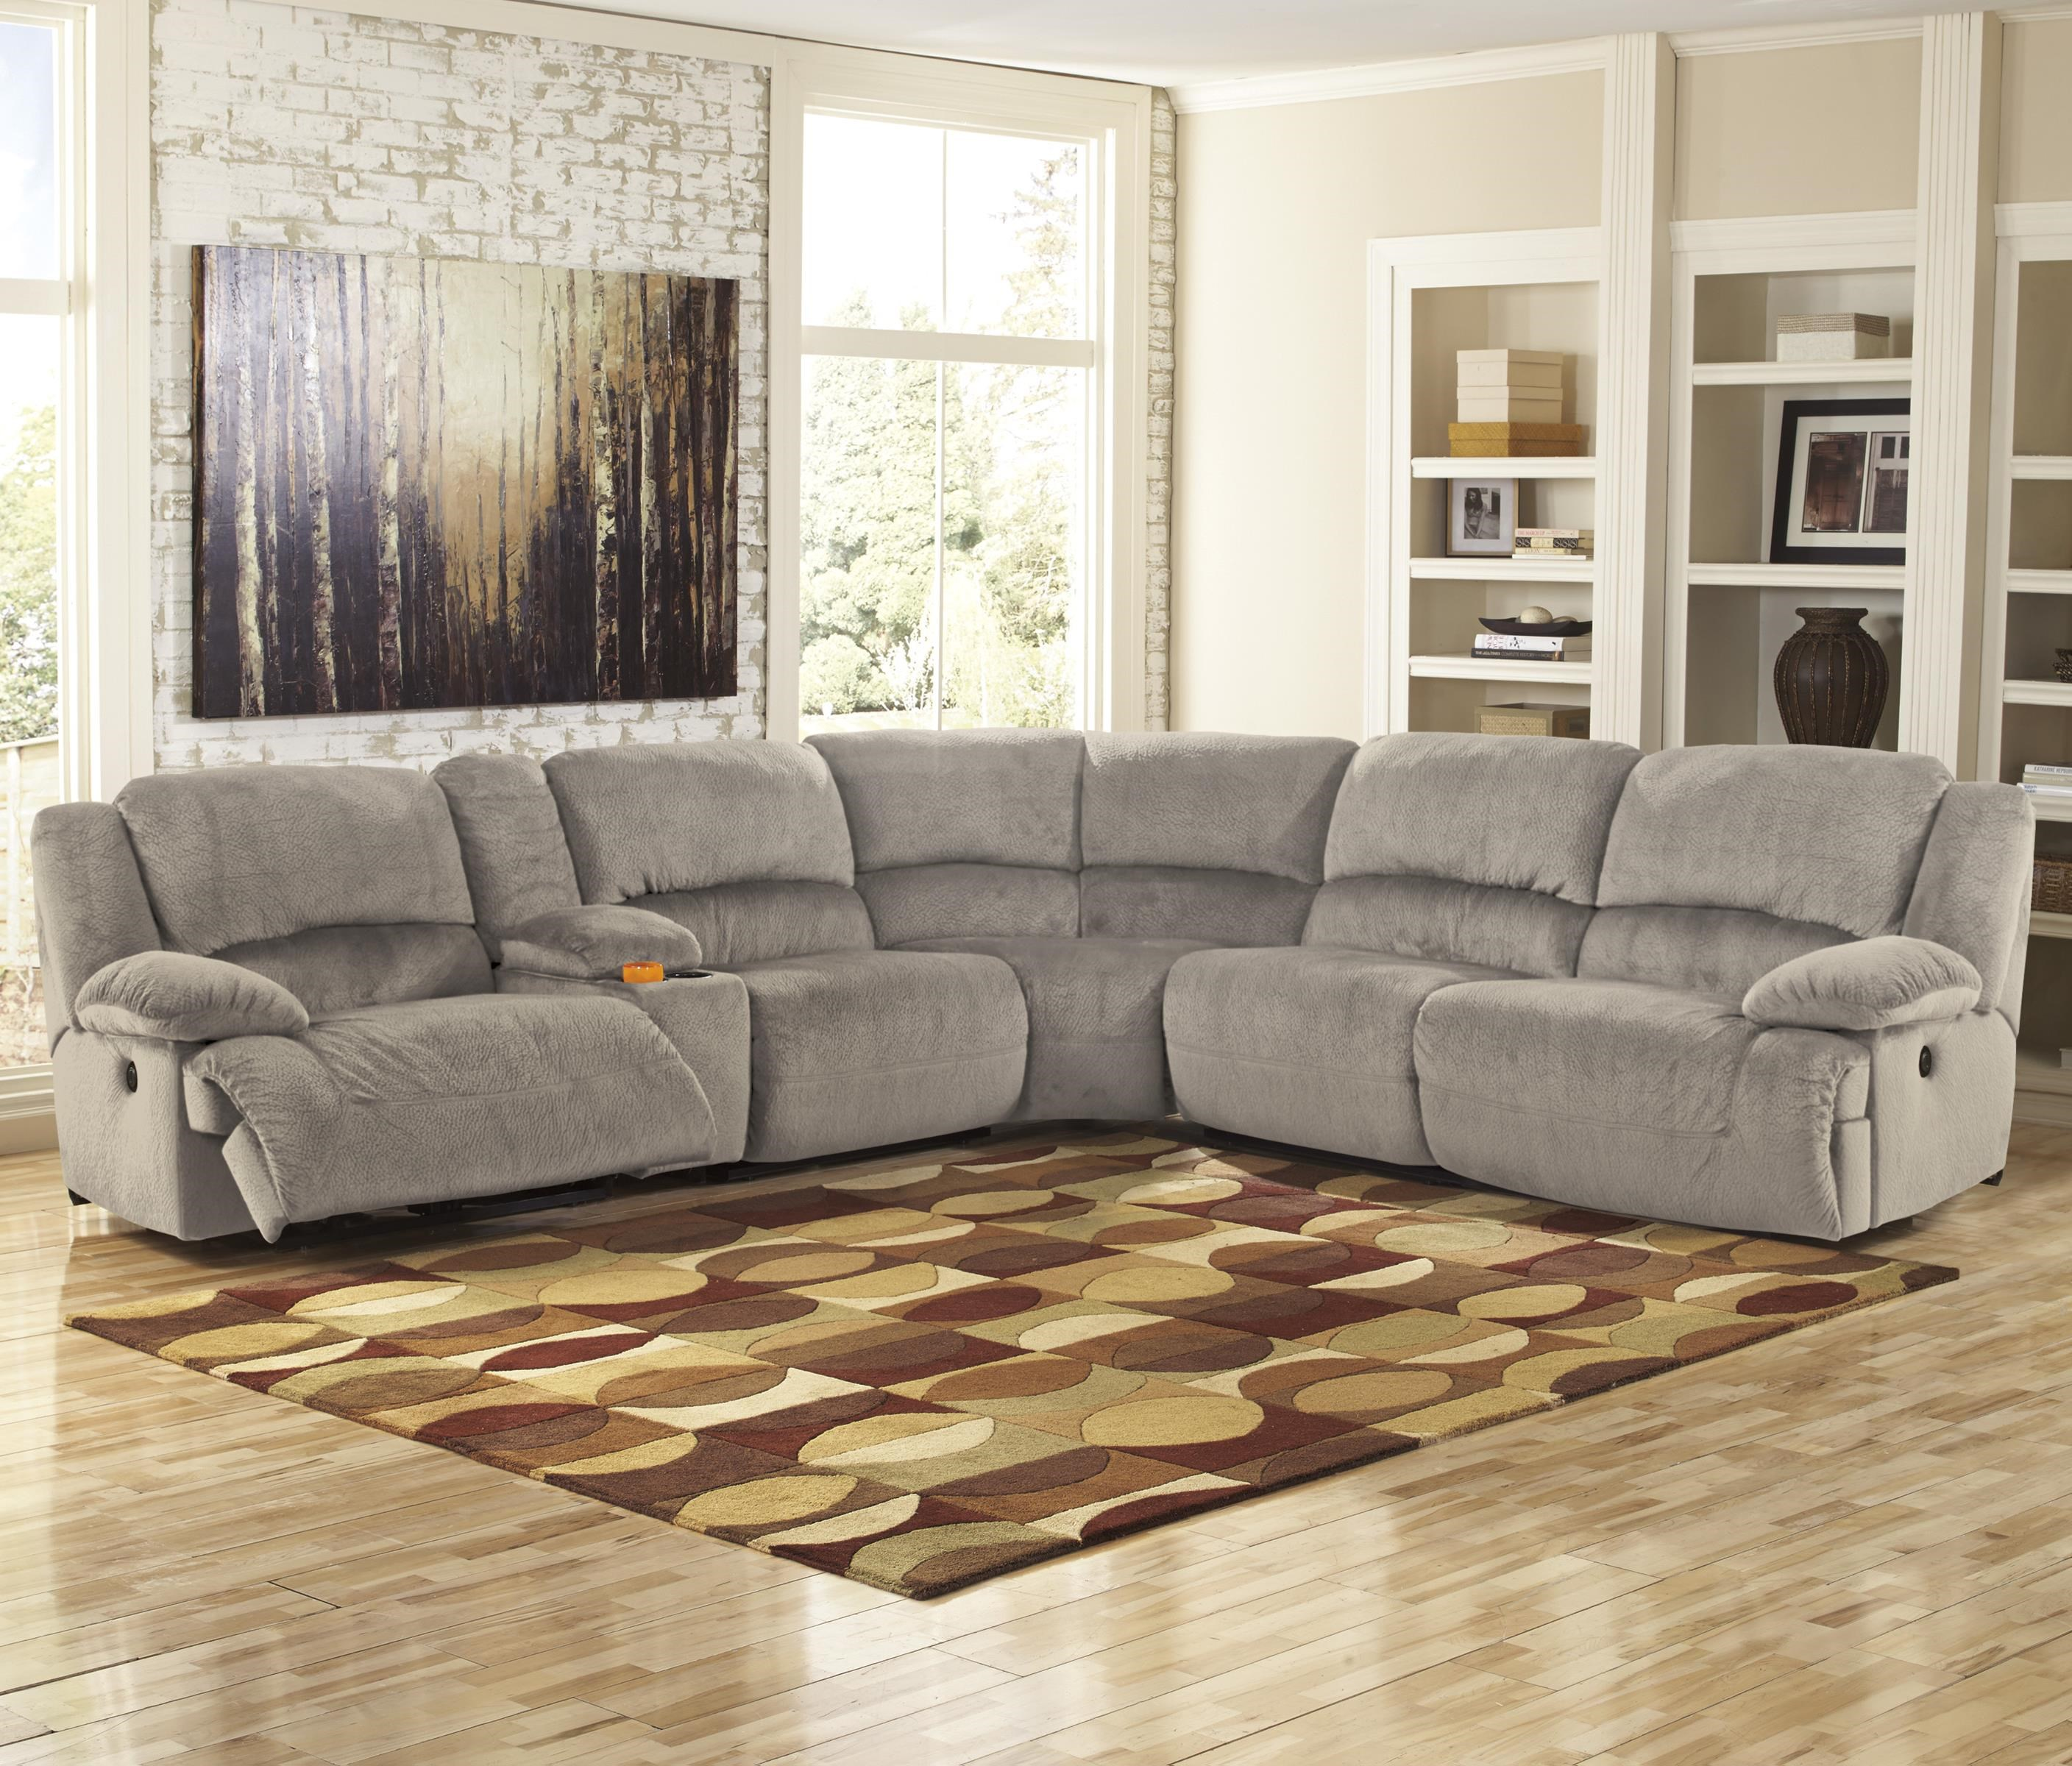 Signature Design by Ashley Toletta - Granite Power Reclining Sectional with Console : power reclining sectional sofa - Sectionals, Sofas & Couches